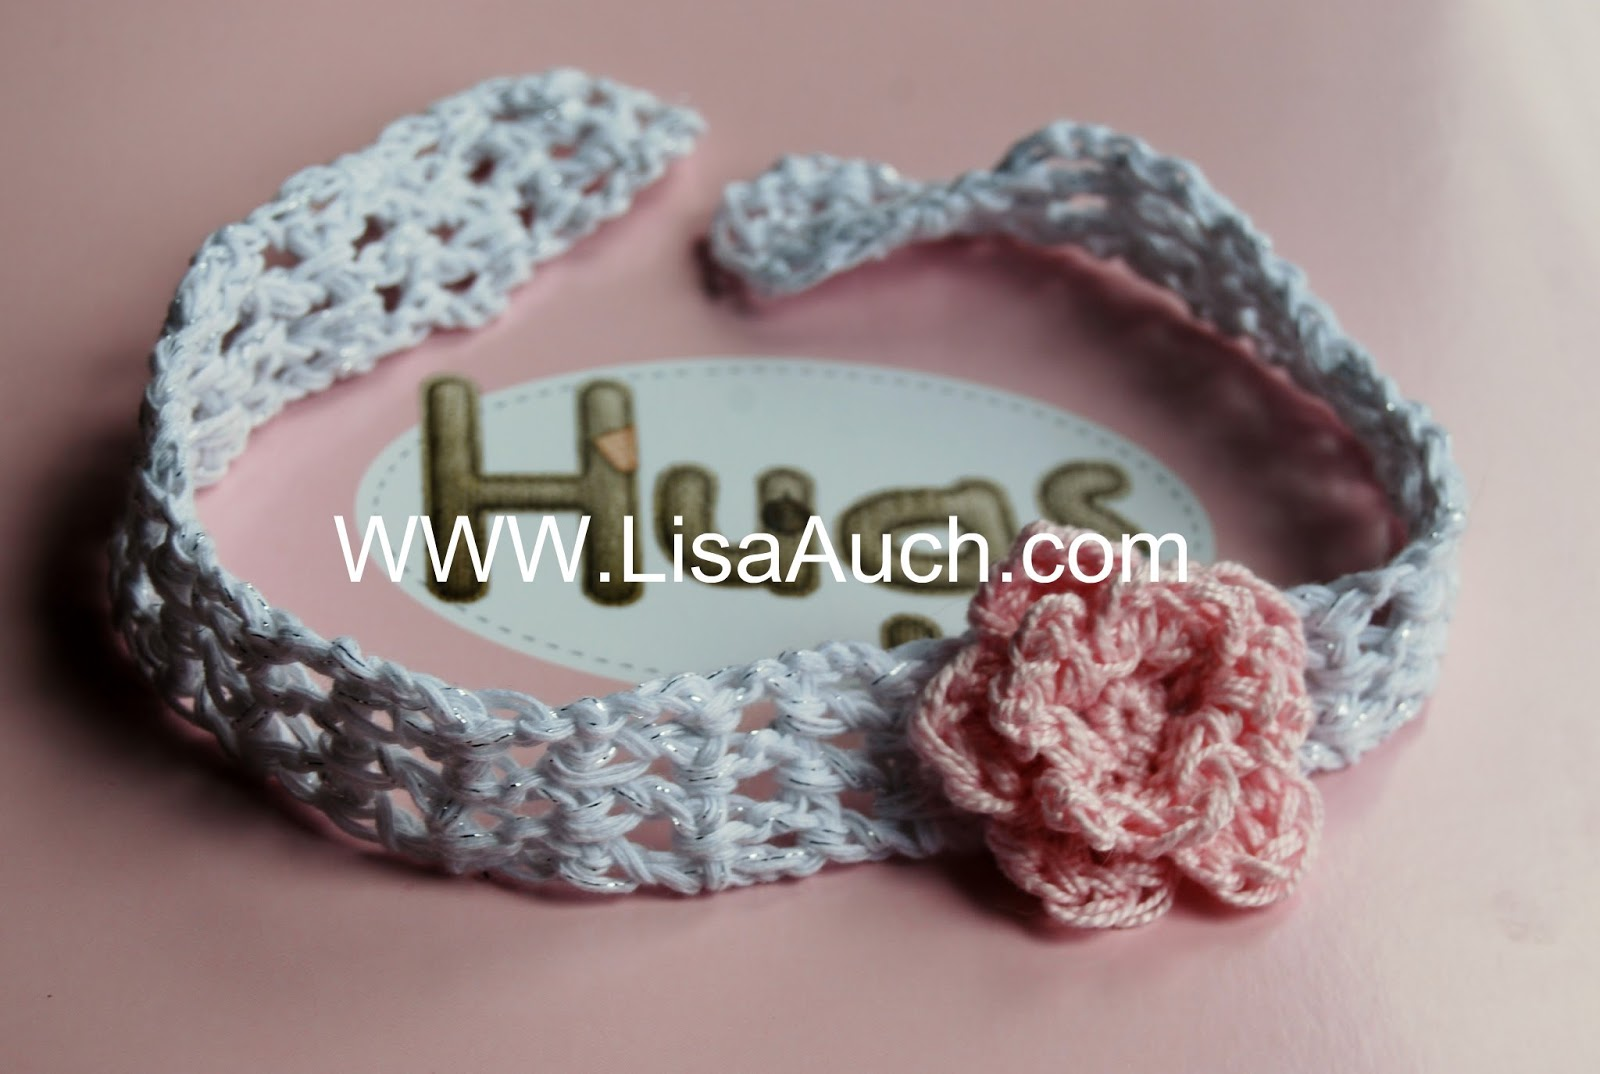 CROCHET BABY HEADBAND PATTERN - FREE PATTERNS